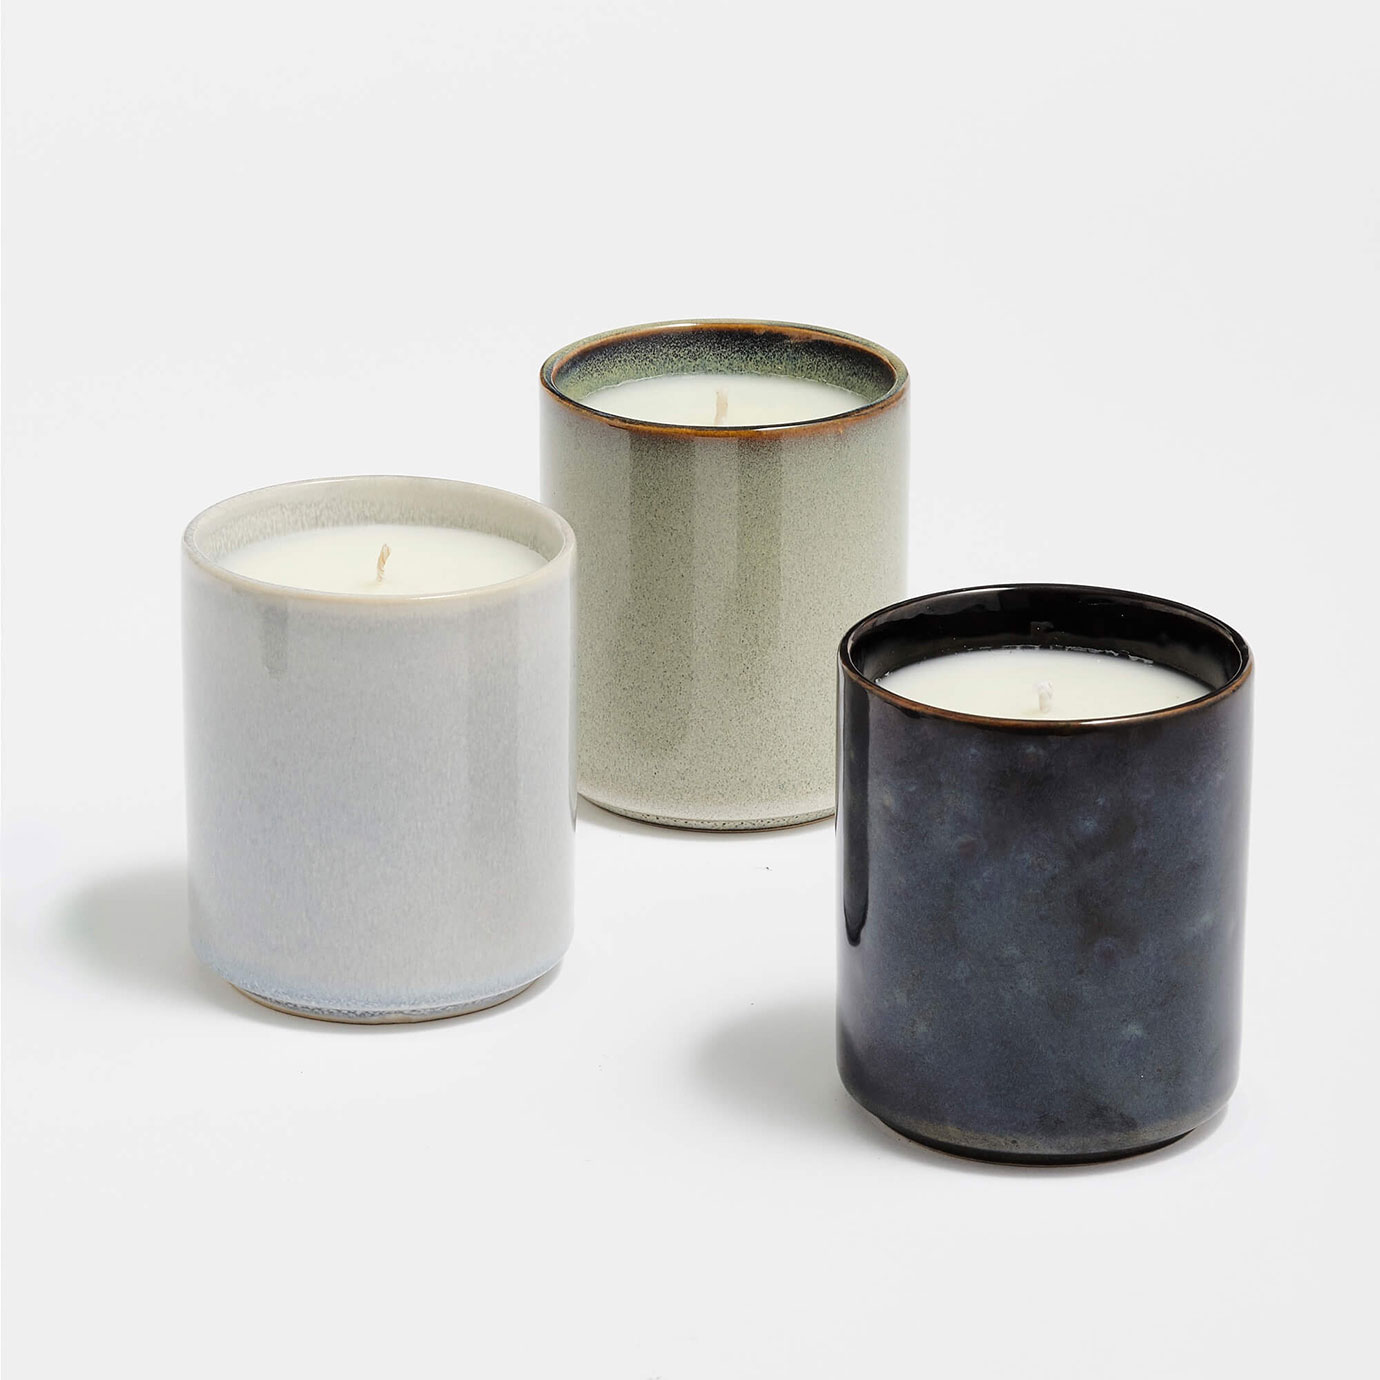 Three scented candles.